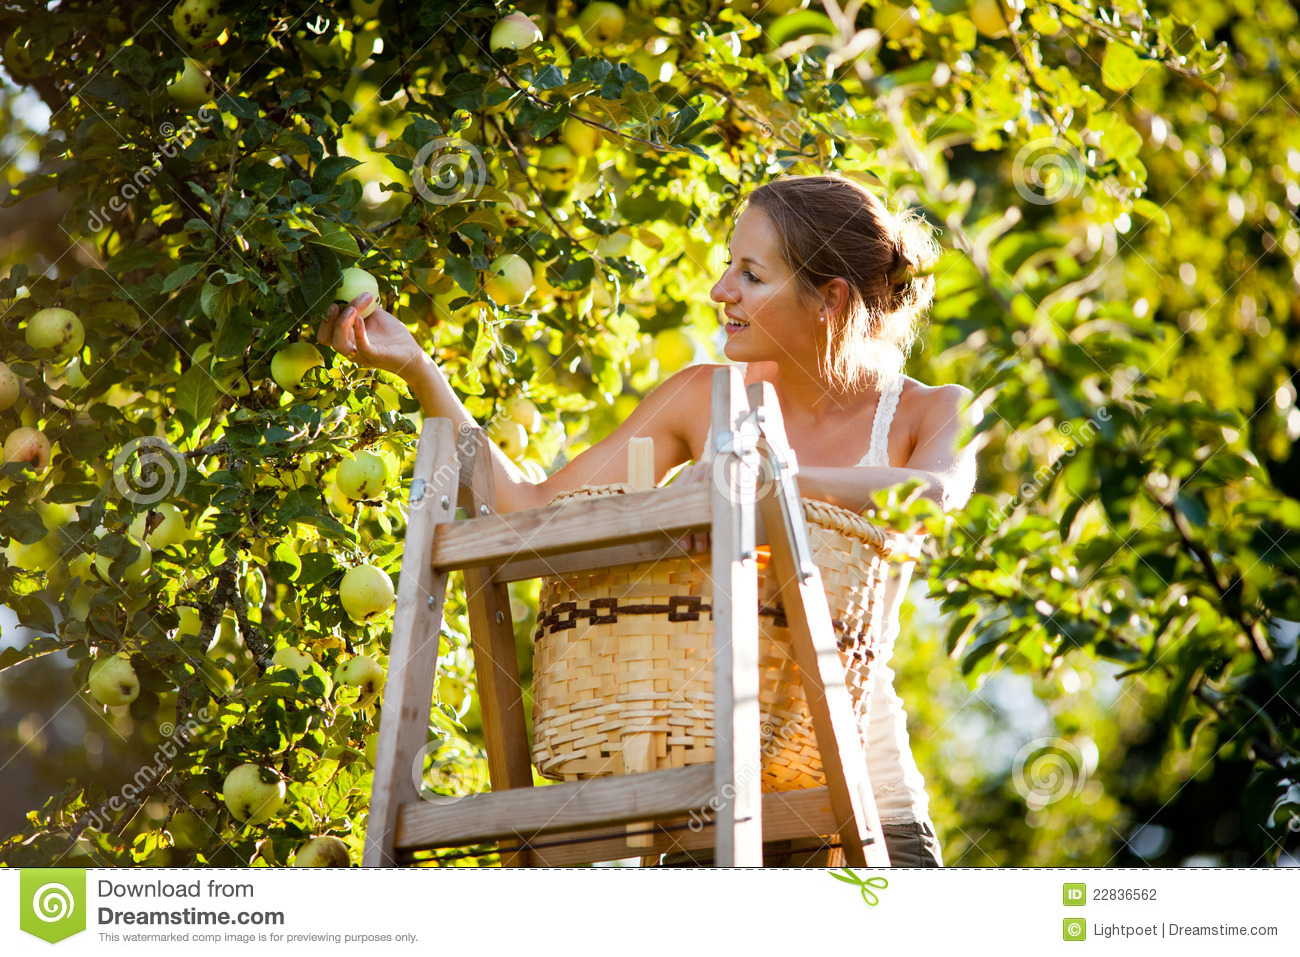 Young woman up on a ladder picking apples from an apple tree